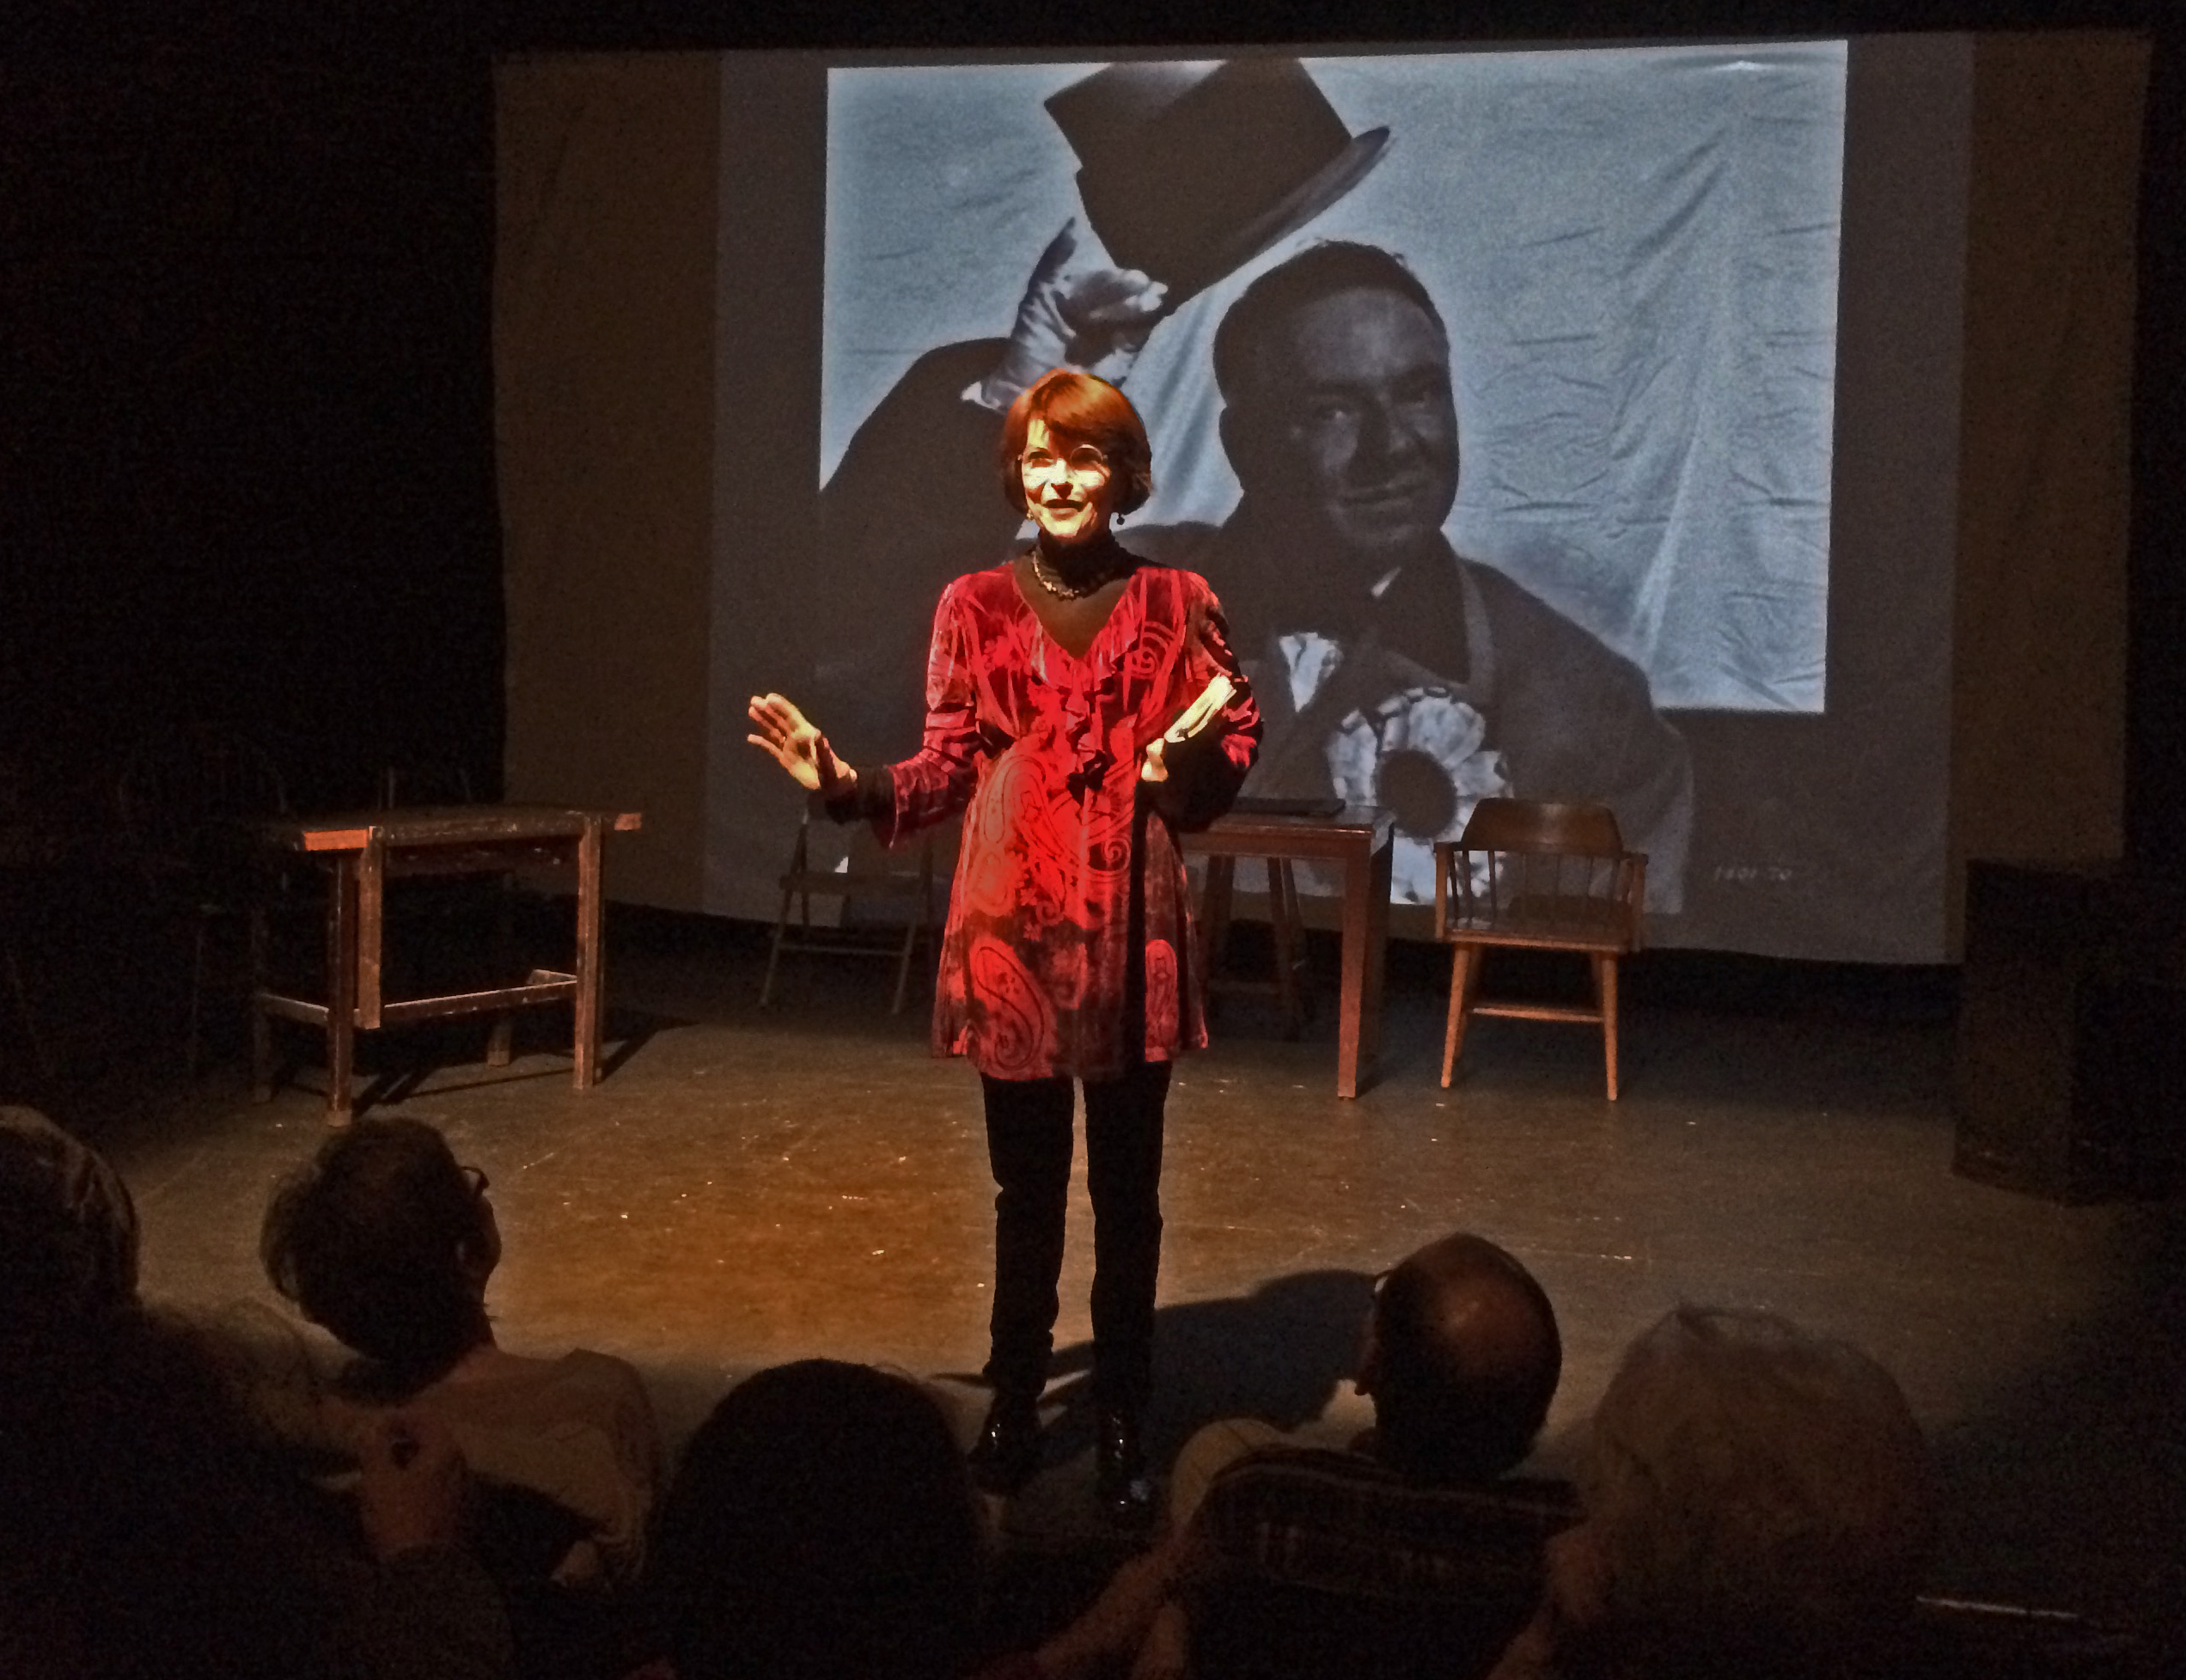 Dr. Harriet Fields at the Canary Trial Re-enactment